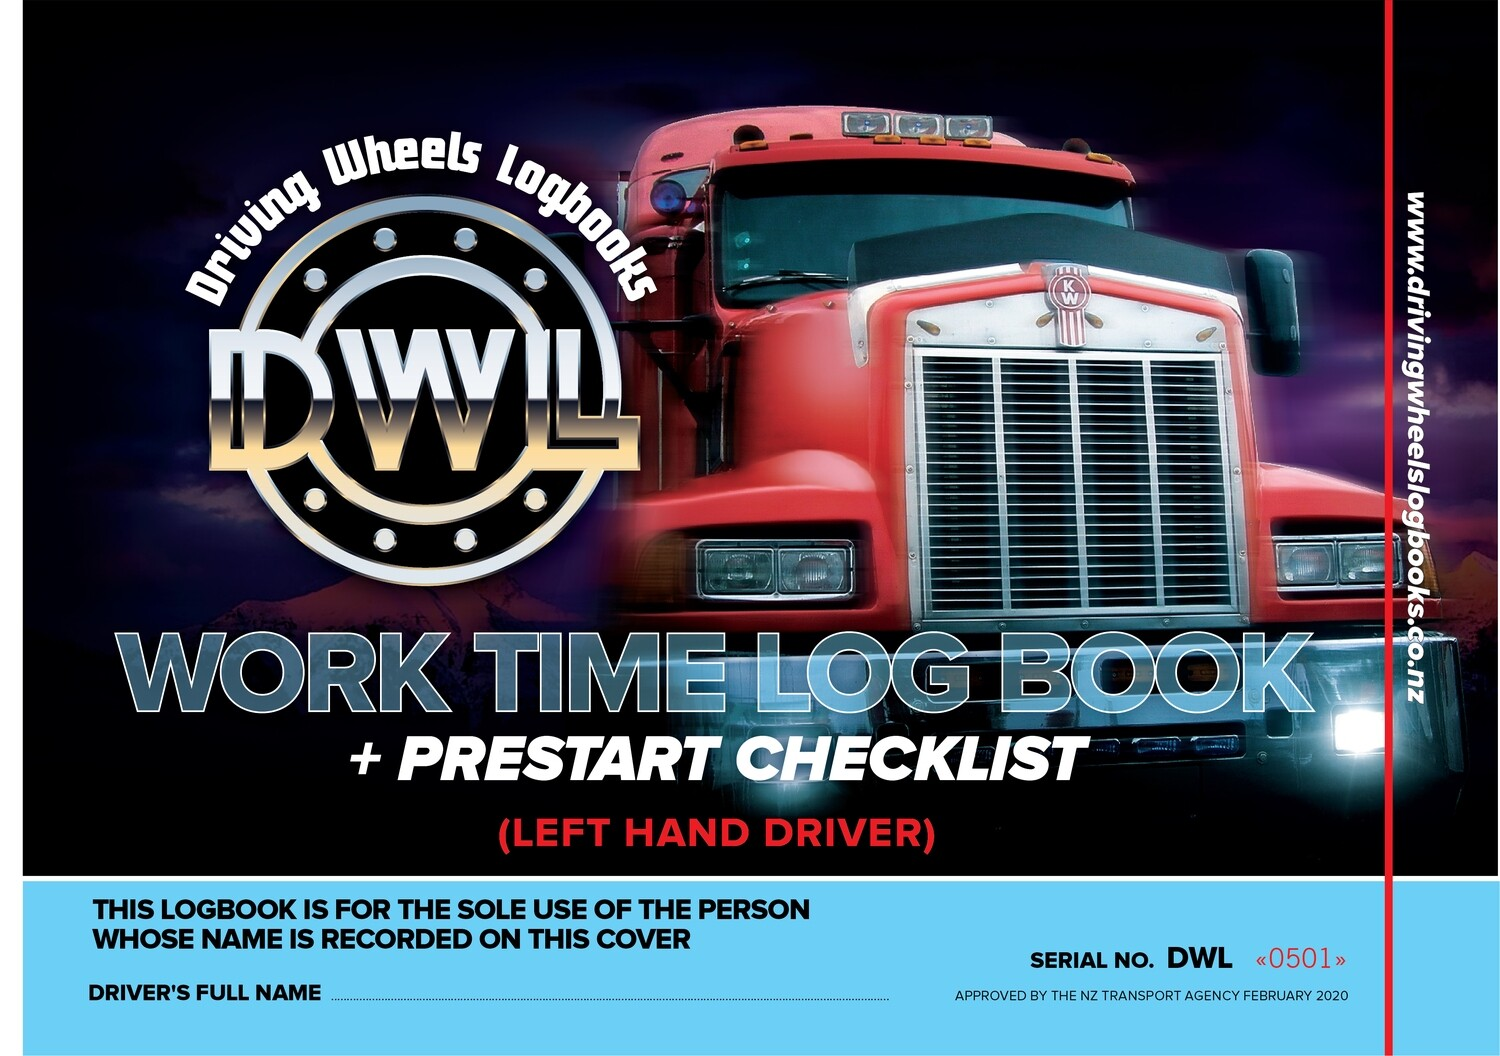 NEW*** A4 LEFTY Driving Wheels Worktime Logbook (DWL Lefty) - NZTA Approved